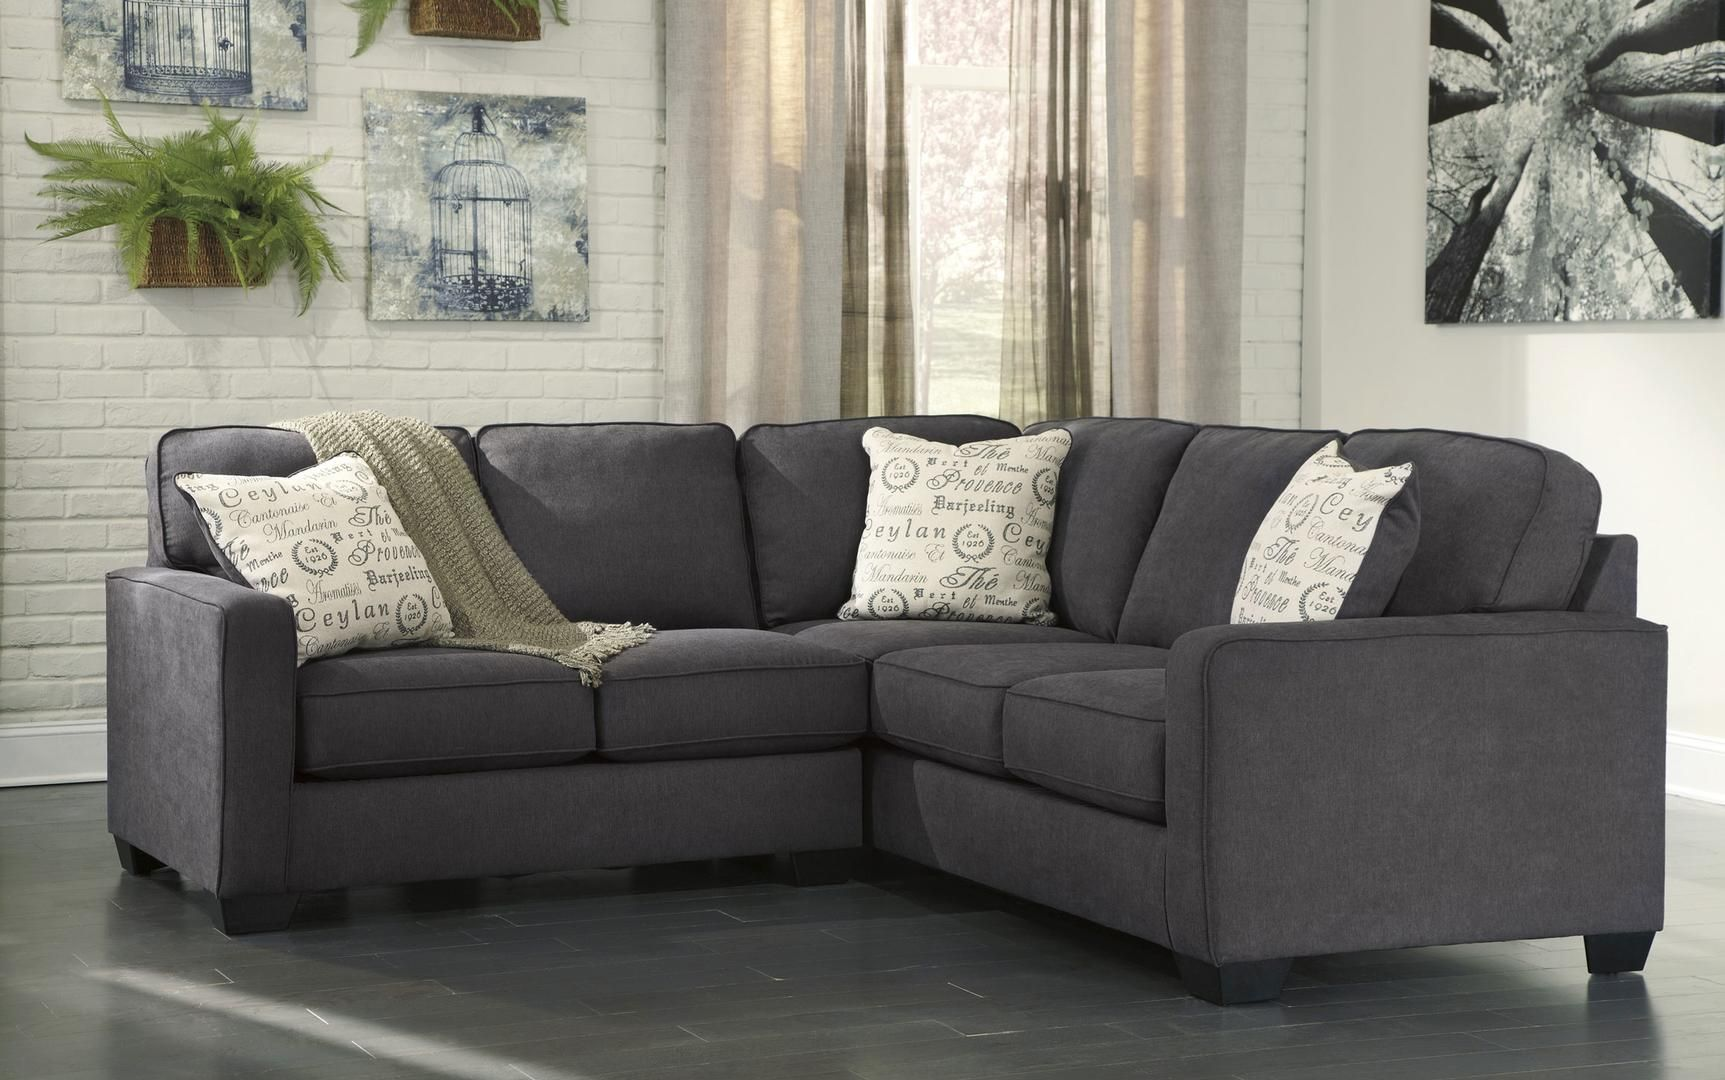 Signature Design by Ashley 166015567 is part of Traditional Living Room Sectional - Signature Design by Ashley Alenya 166015567 2PC Sectional Sofa with Left Arm Facing Loveseat, Right Arm Facing Sofa, Pillows with Print Pattern and Track Arms in Charcoal